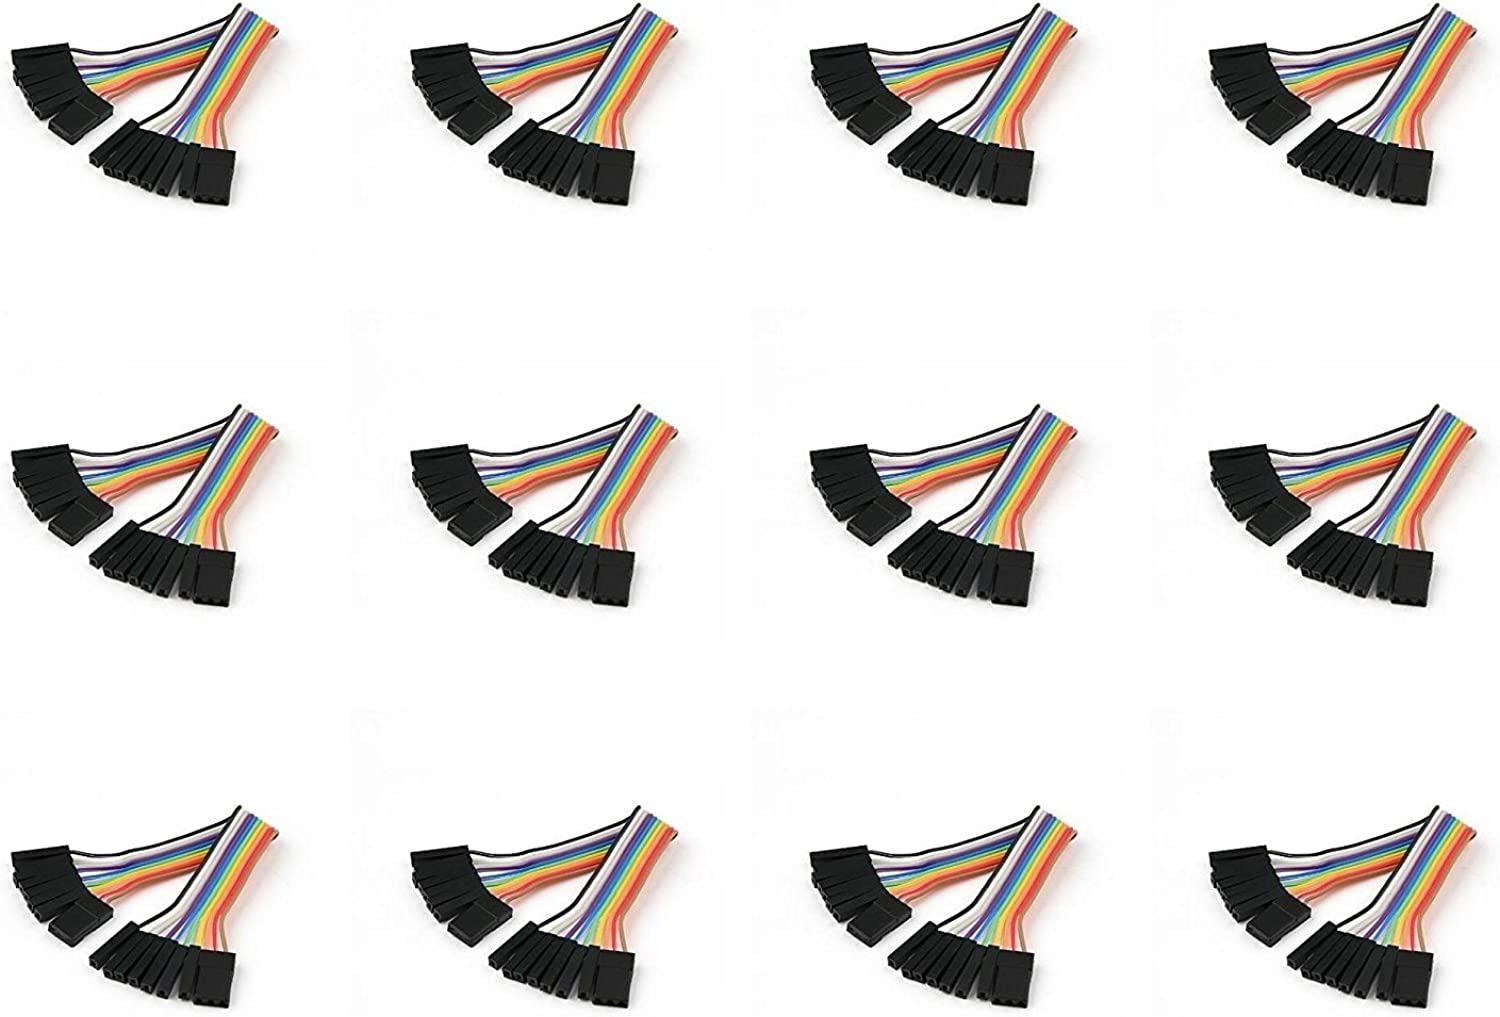 12 x Quantity of Walkera QR X350 PRO FPV (100mm) Super Clean RC Male to Male Ribbon Extensions Set(Servo Connector) - FAST FROM Orlando, Florida USA